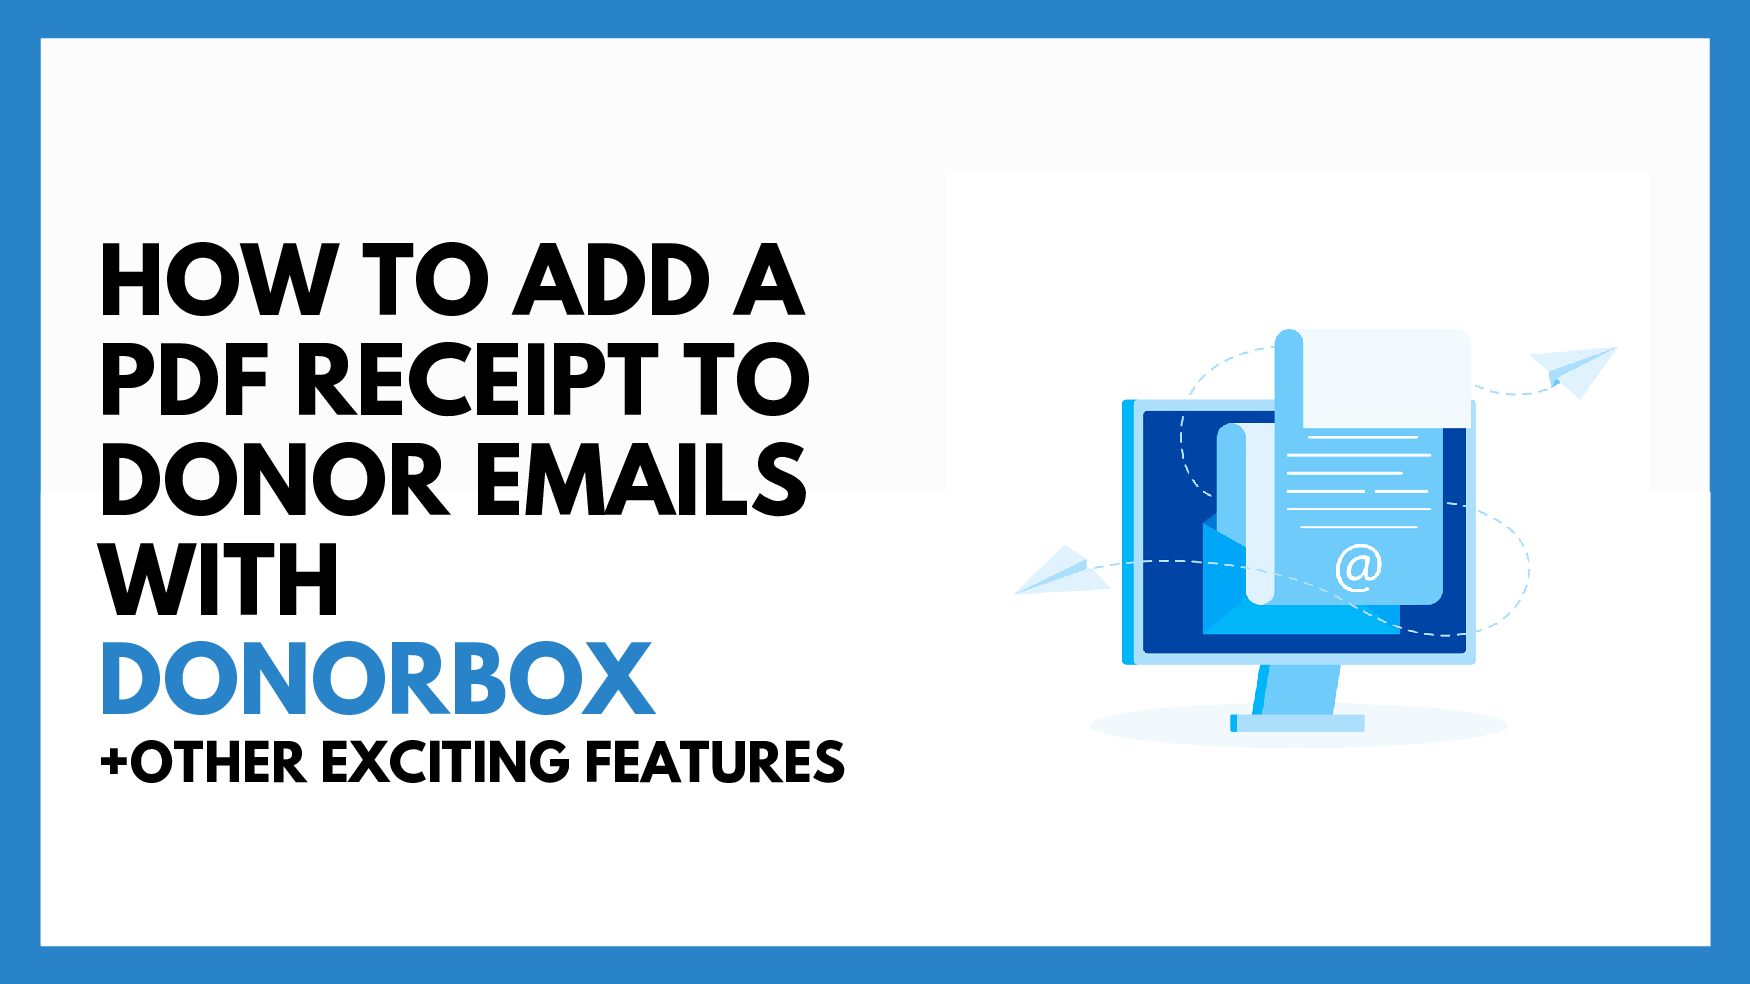 How To Add a PDF Receipt to Donor Emails With Donorbox+Other Exciting Features